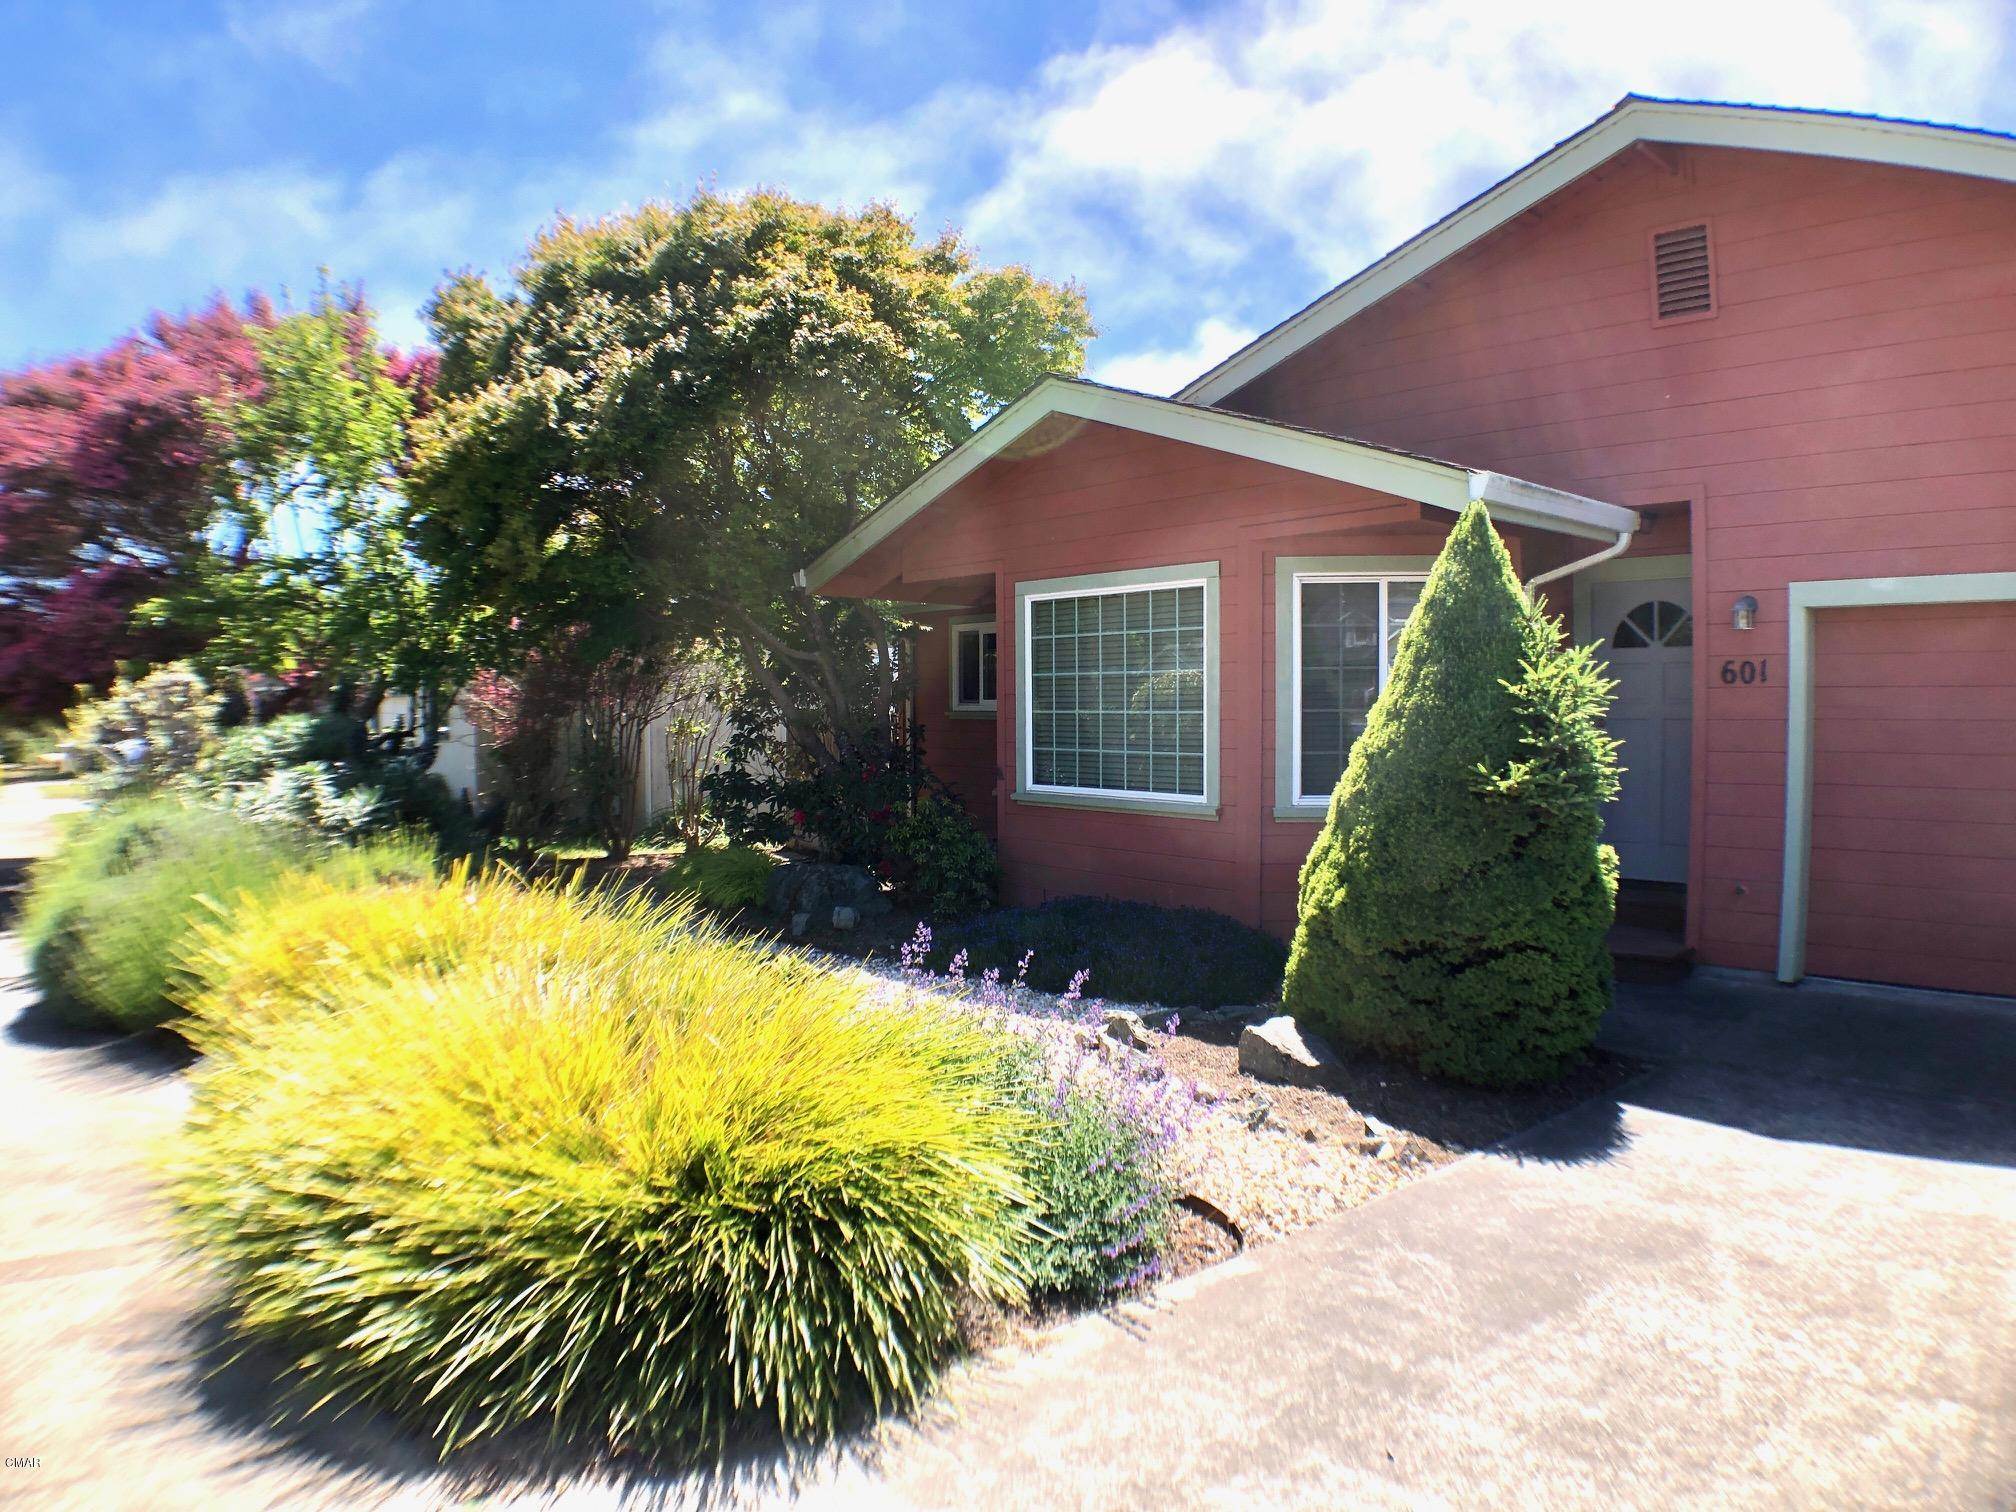 Imagine yourself living in this spacious 3 bed 2bath home in a low density area on the Mendocino coast. Close to school, near cul-de-sac, and in a quiet neighborhood with good private back yard. House has all dual pane windows, new deep double stainless sinks & dish washer in kitchen, a wood-stove in the living room, and an additional electric heater to add ambience to the master bedroom, in addition to a propane furnace. Both master bedroom and dining area have patio doors leading to the beautifully landscaped back yard, with great privacy that is provided by a mature Japanese maple etc. The house has an attached two-car garage with the interior sheet rocked. It has a newer furnace, a new water heater, a newer garage door opener. Priced to sell As-Is with 1 year AHS home warranty.